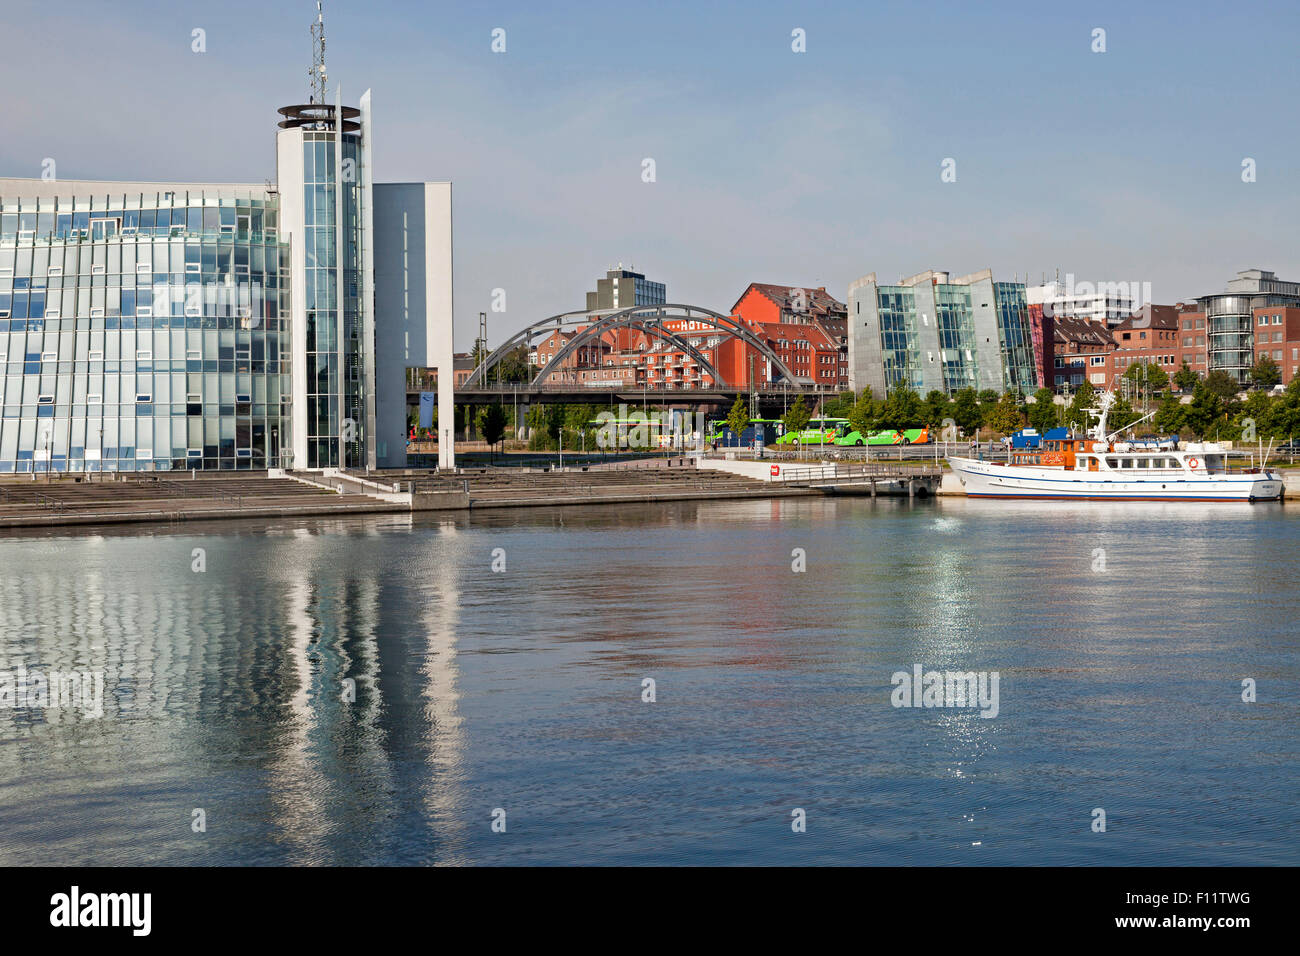 Hörn-Campus Building  and Kiel Fjord, Kiel, Schleswig-Holstein, Germany - Stock Image